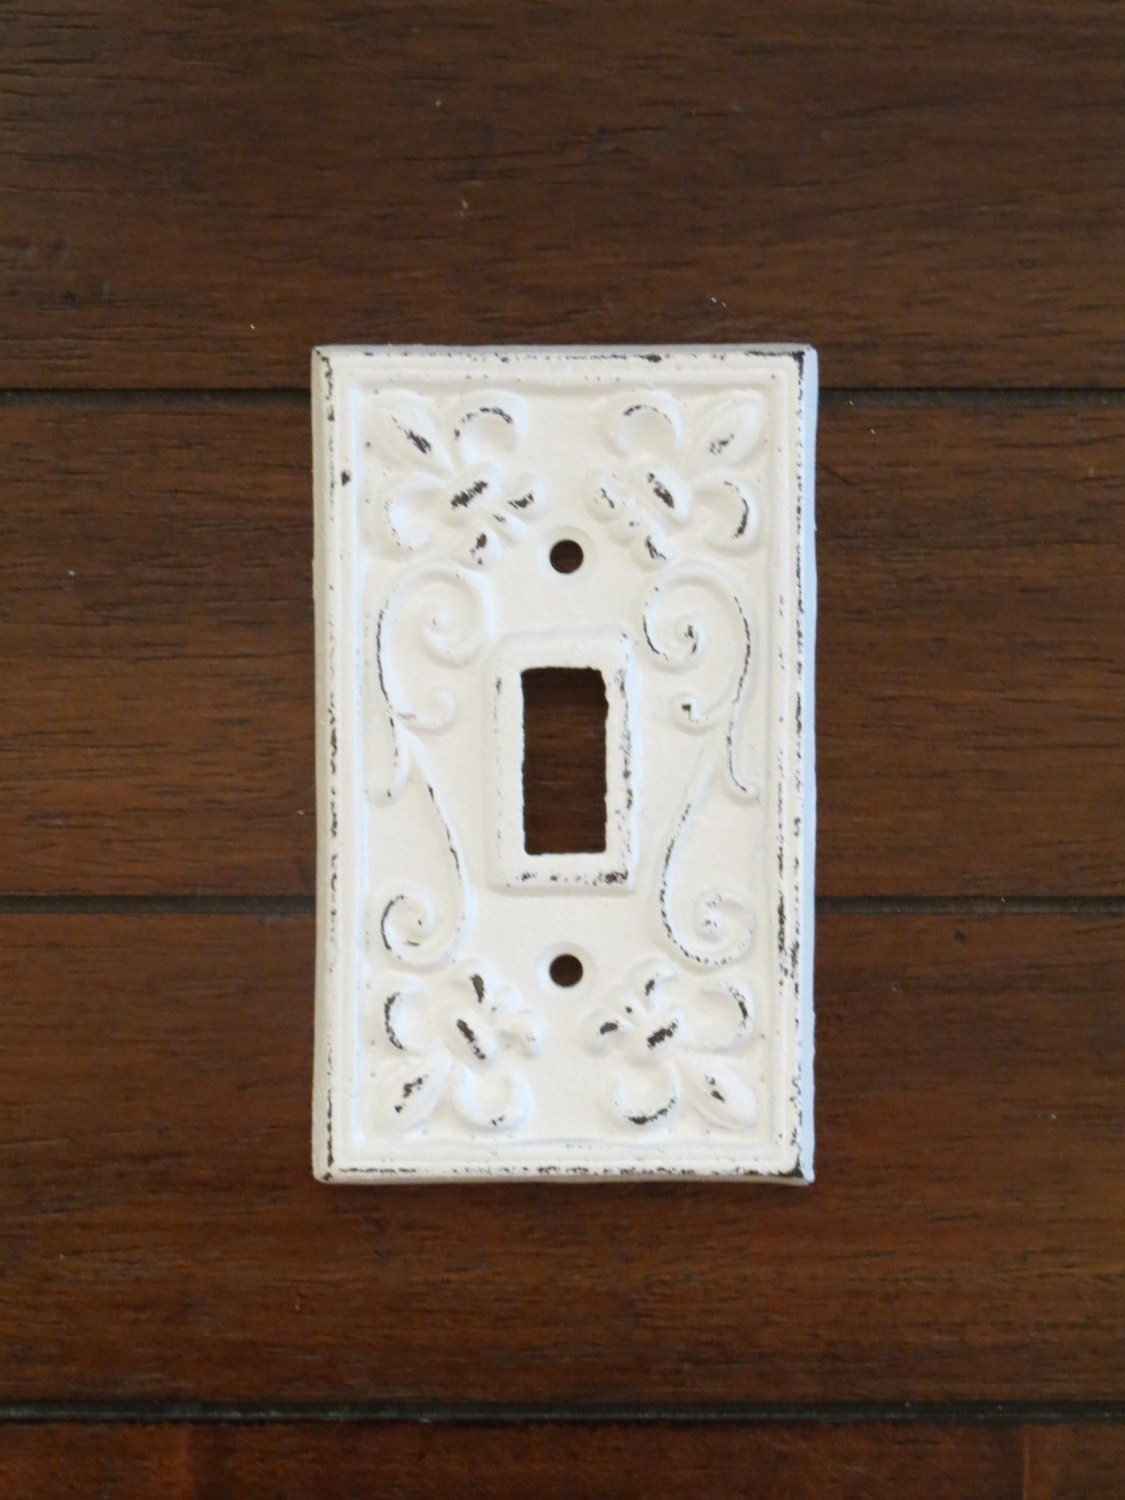 Light switch plate covers decorative - Light Switch Plate Light Plate Cover Cast Iron Switchplate Antique White Or Pick Color Fleur De Lis Pattern French Country Cottage